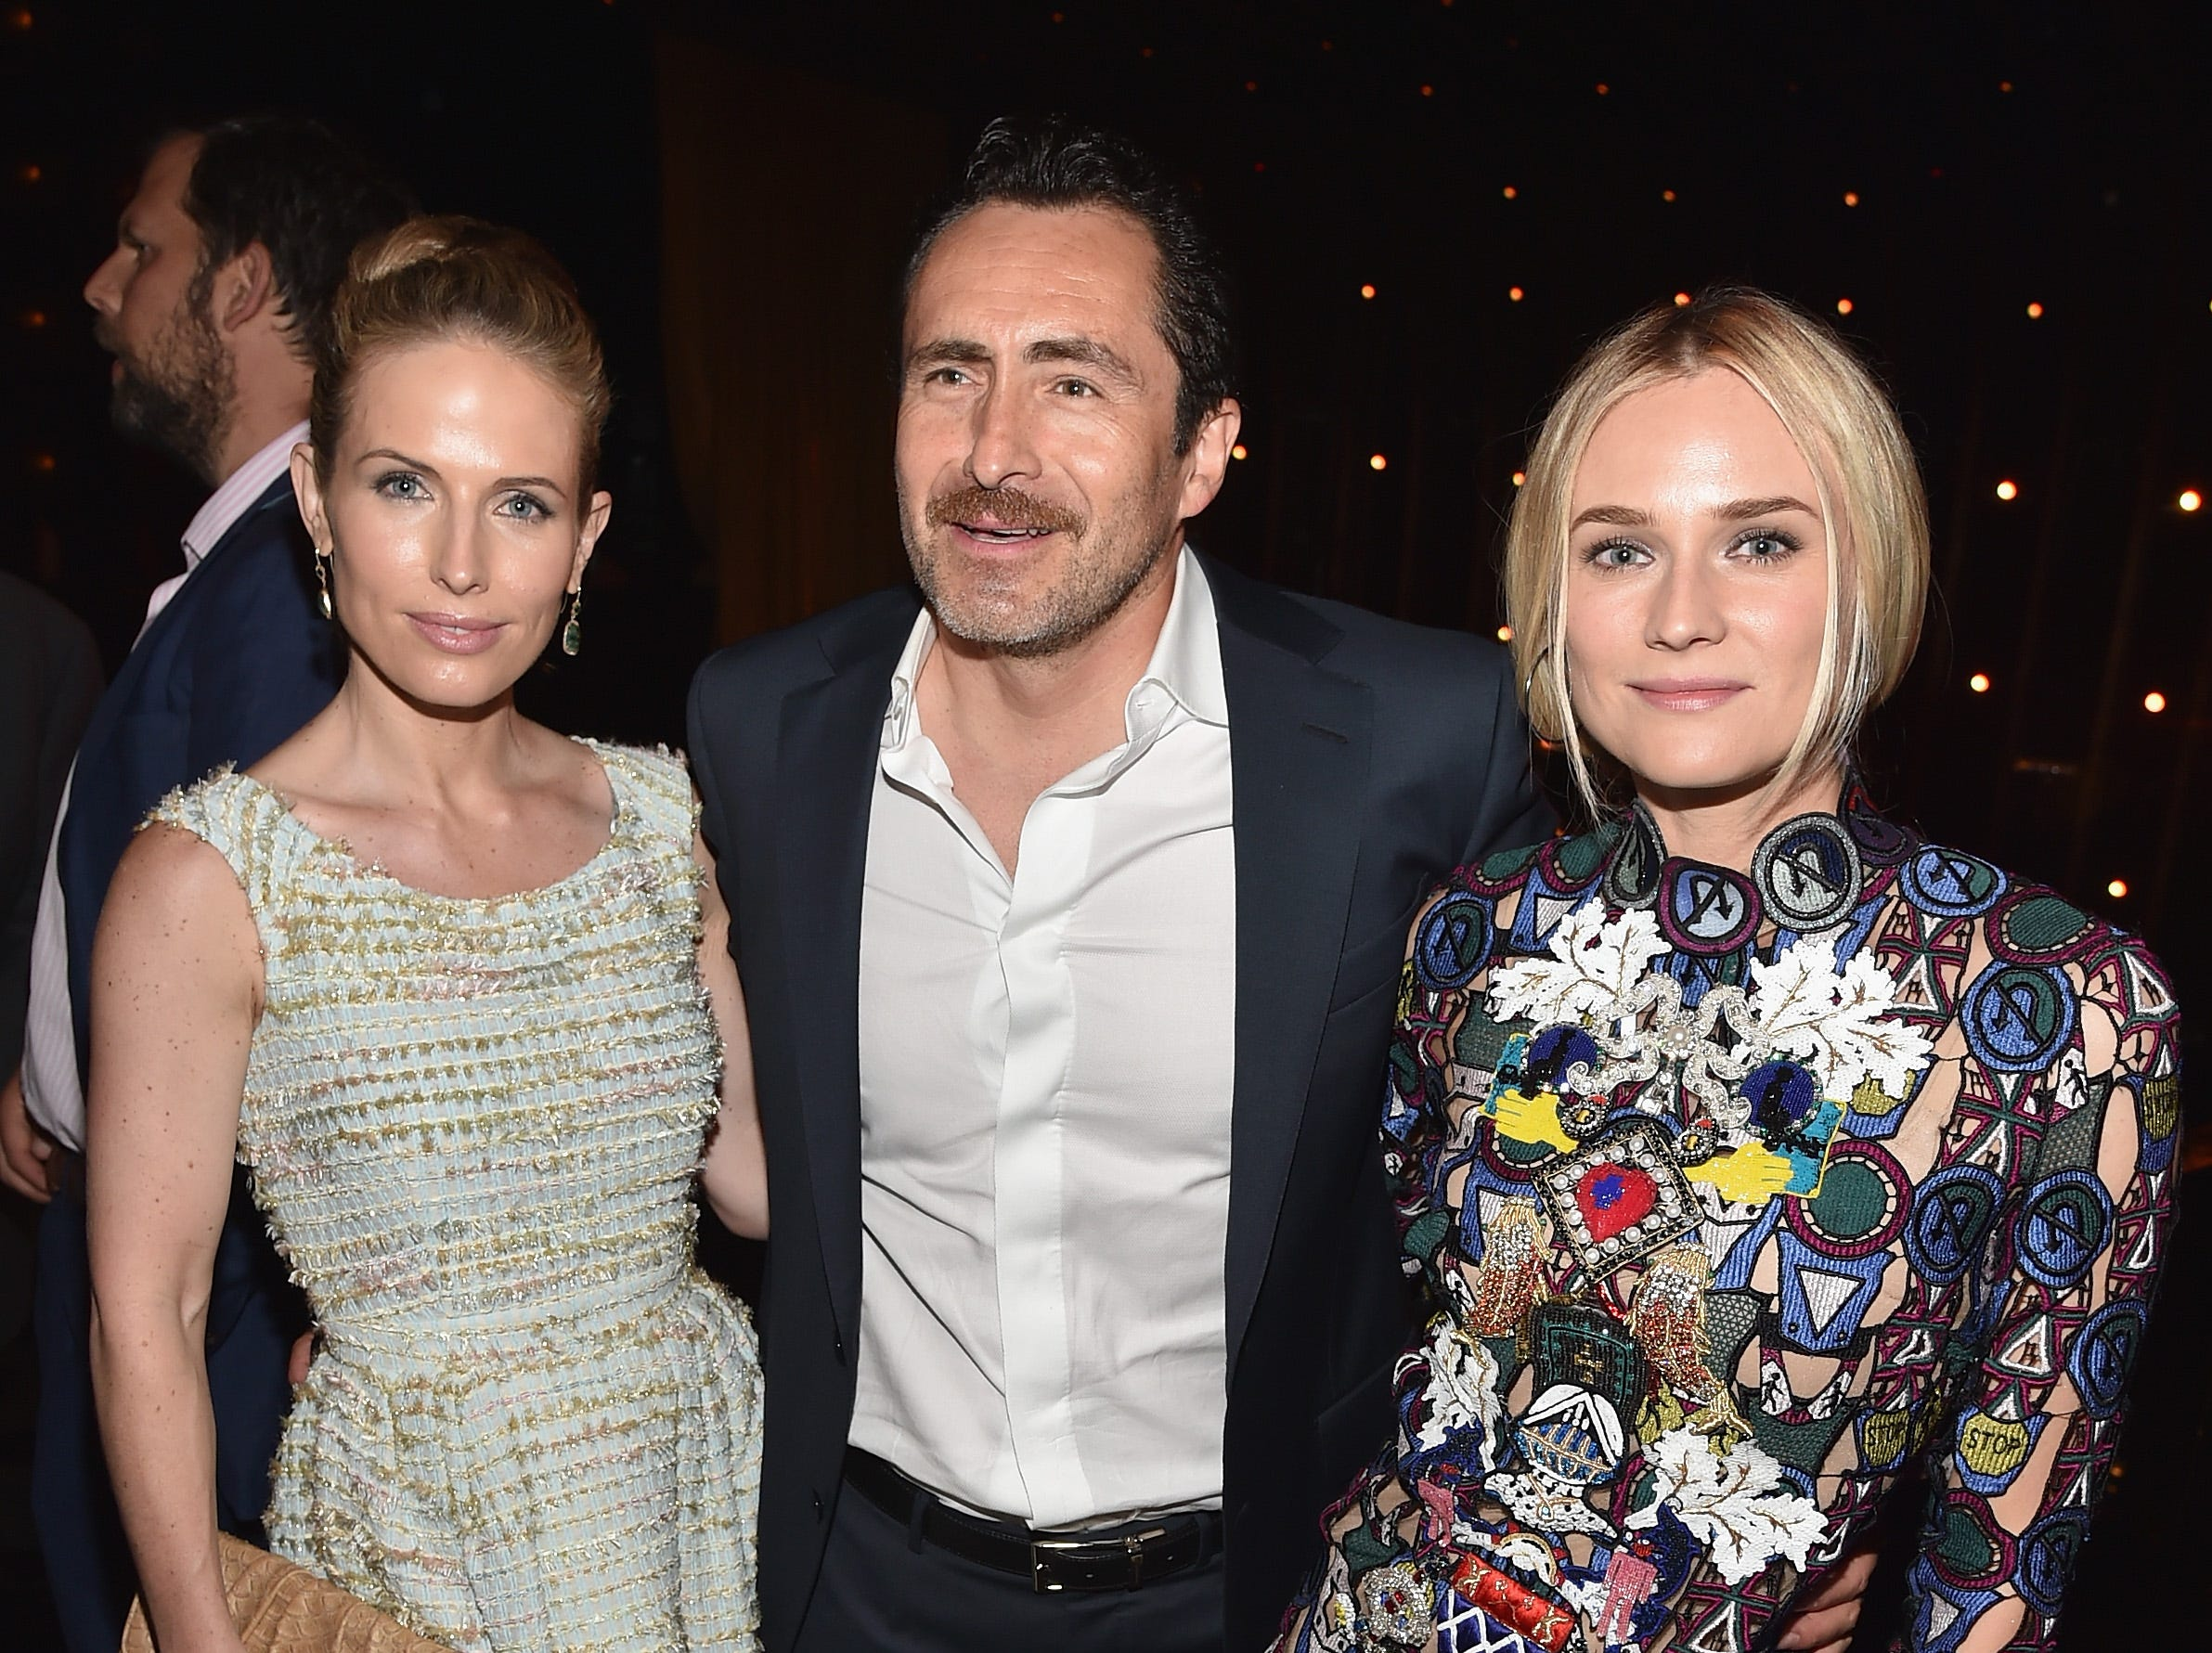 """Demian Bichir is flanked by wife Stefanie Sherk (left) and co-star Diane Kruger at the season premiere party for """"The Bridge"""" on July 7, 2014, in West Hollywood, California."""